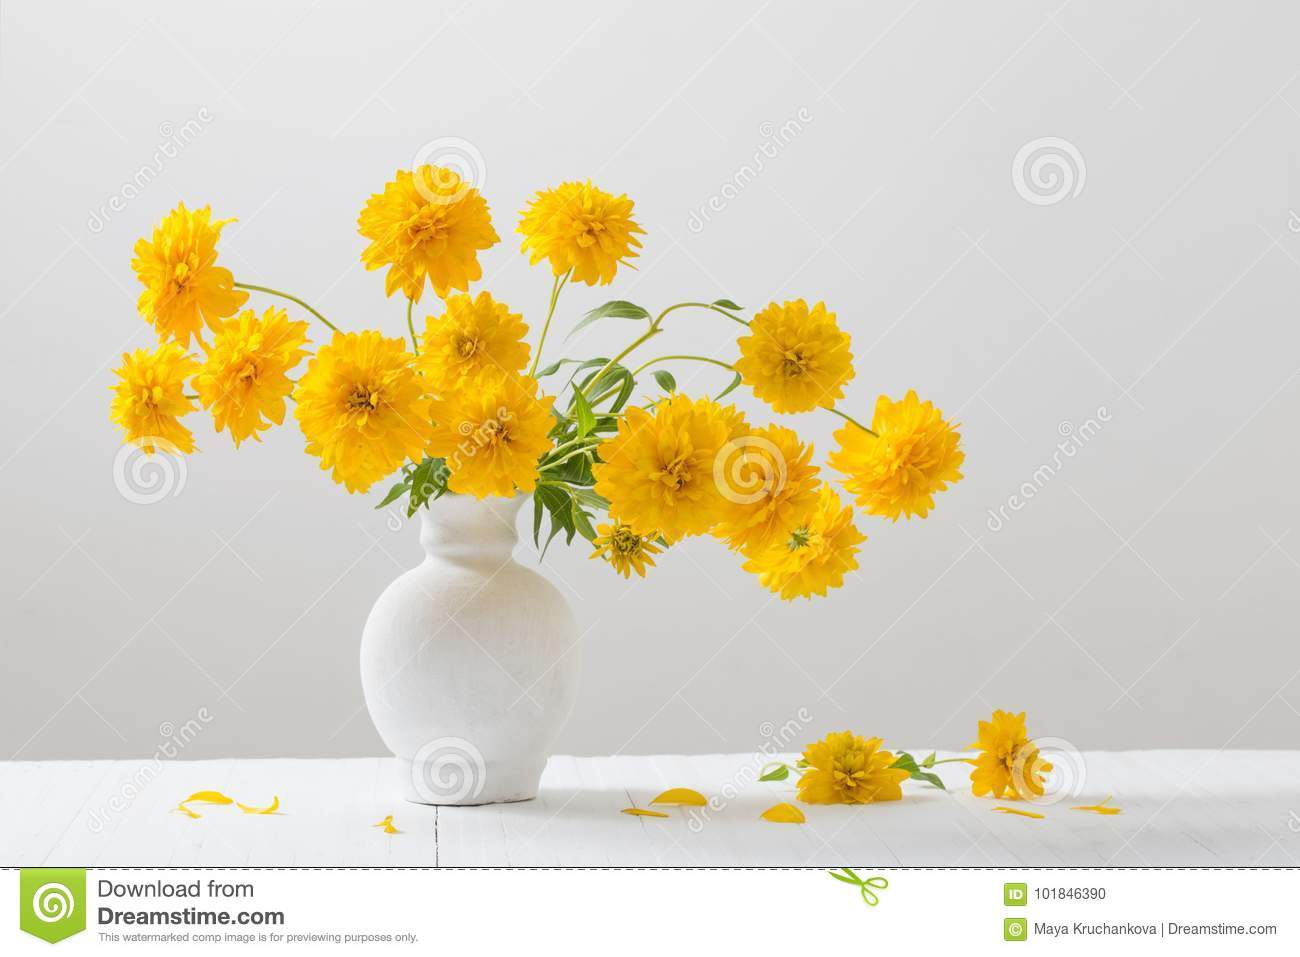 Yellow flowers in vase on white background stock photo image of yellow flowers in vase on white background mightylinksfo